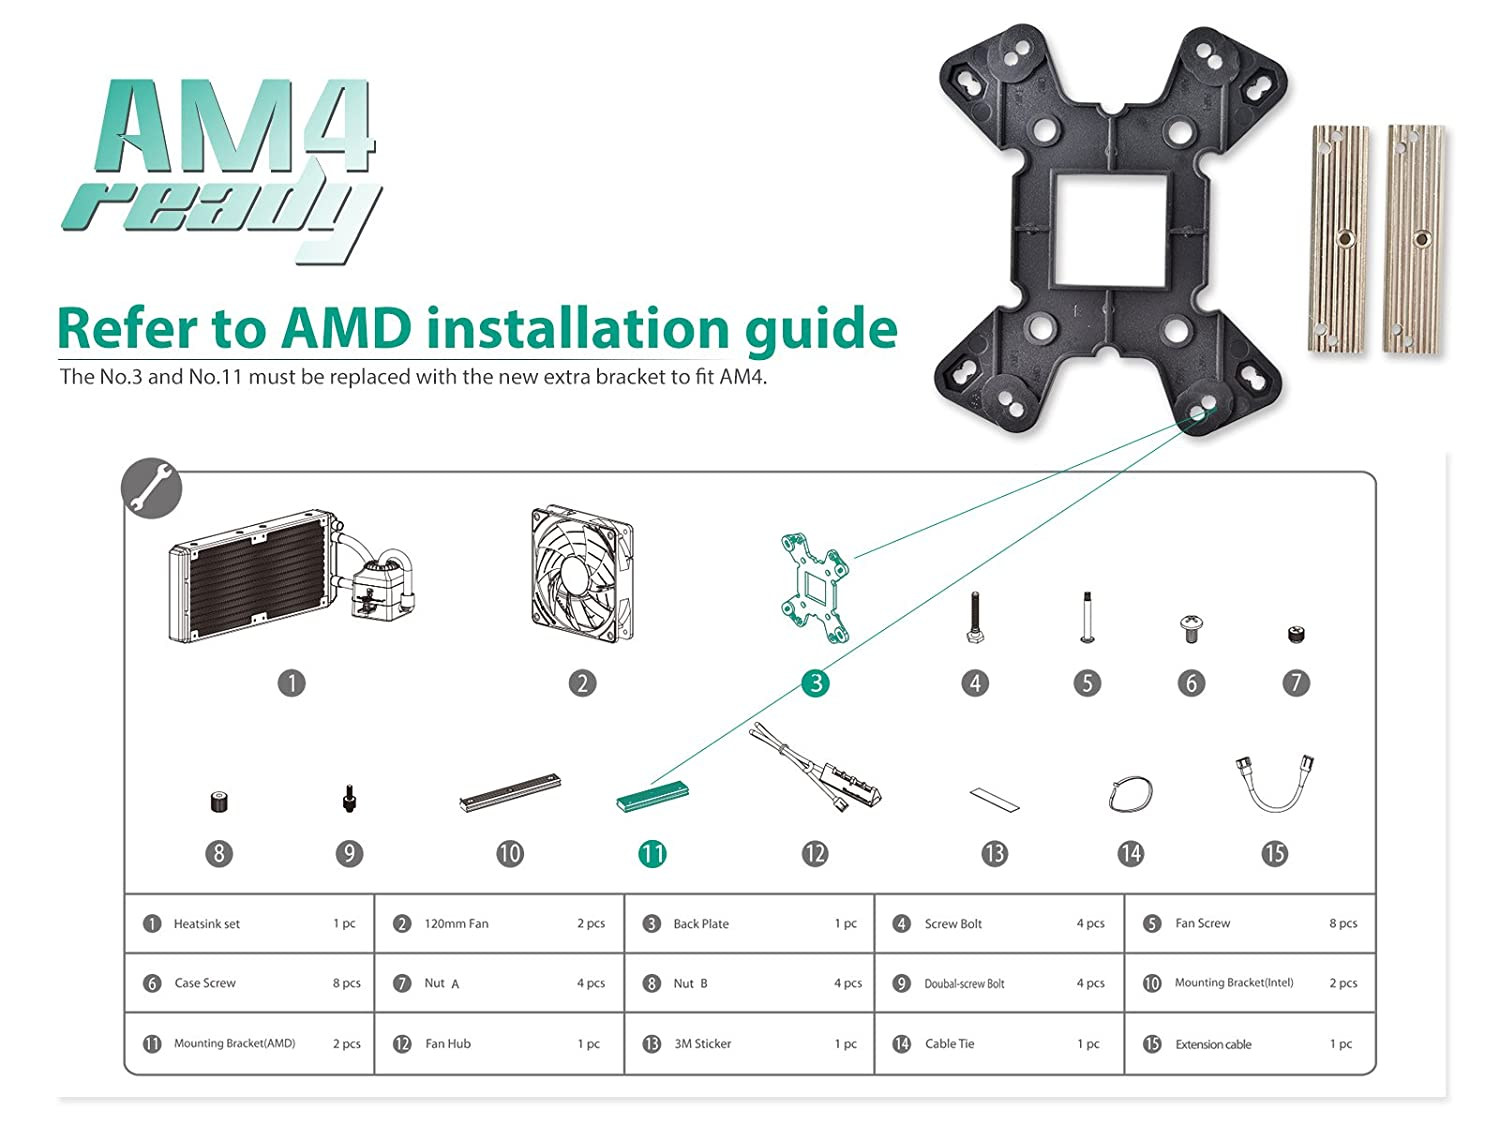 Amazon.com: DEEPCOOL AM4 Bracket for Upgrade of CAPTAIN EX/GENOME/GENOME  II/GENOME ROG Only: Computers & Accessories